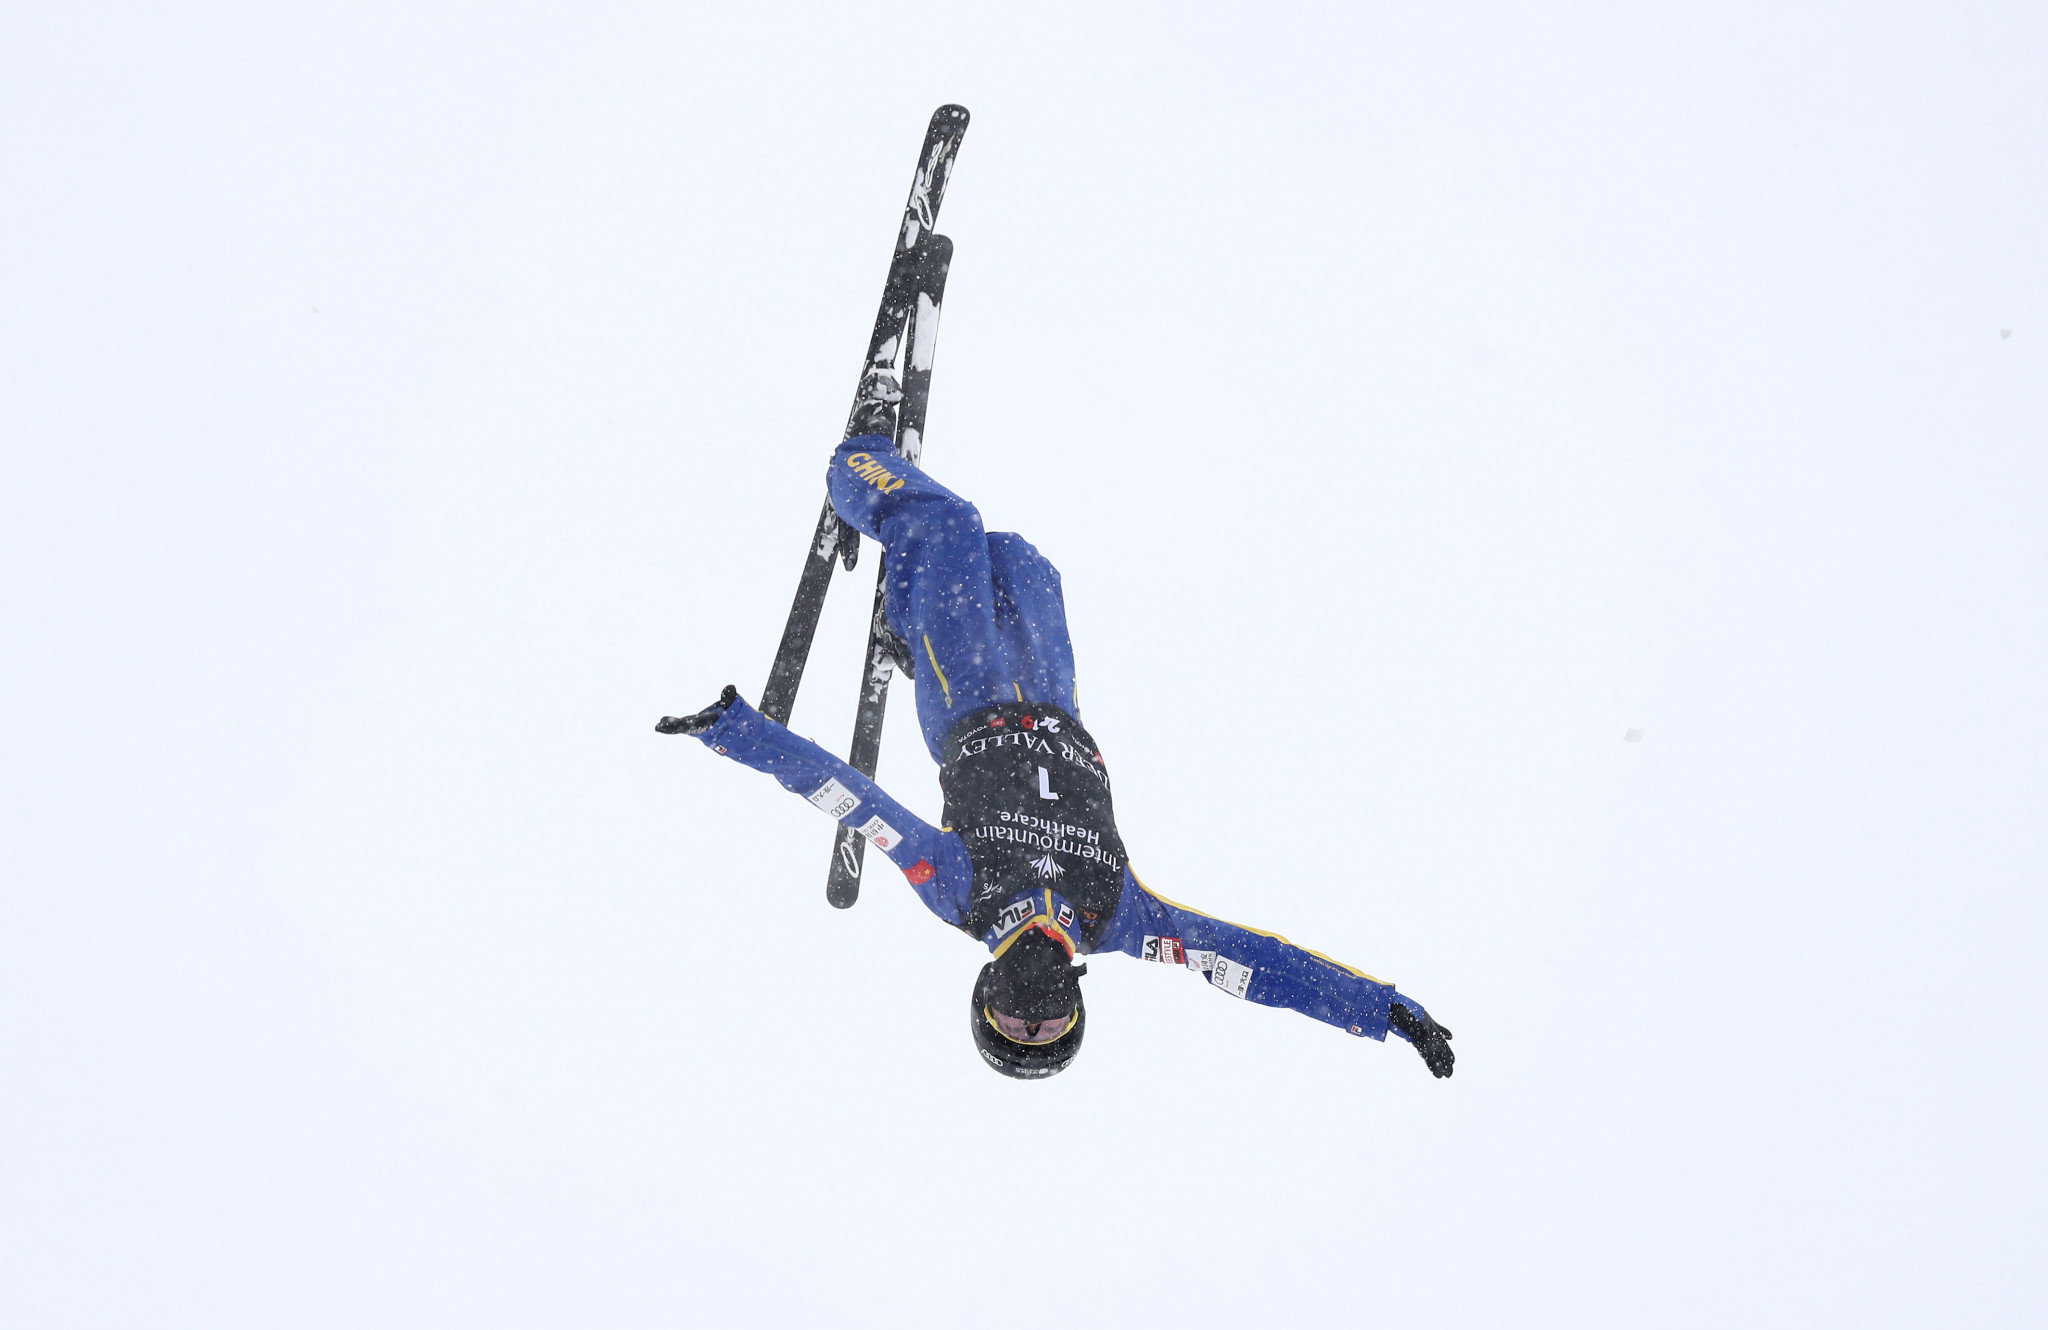 Xu looks to extend Aerials World Cup lead in front of home crowd on Shimao Lotus Mountain